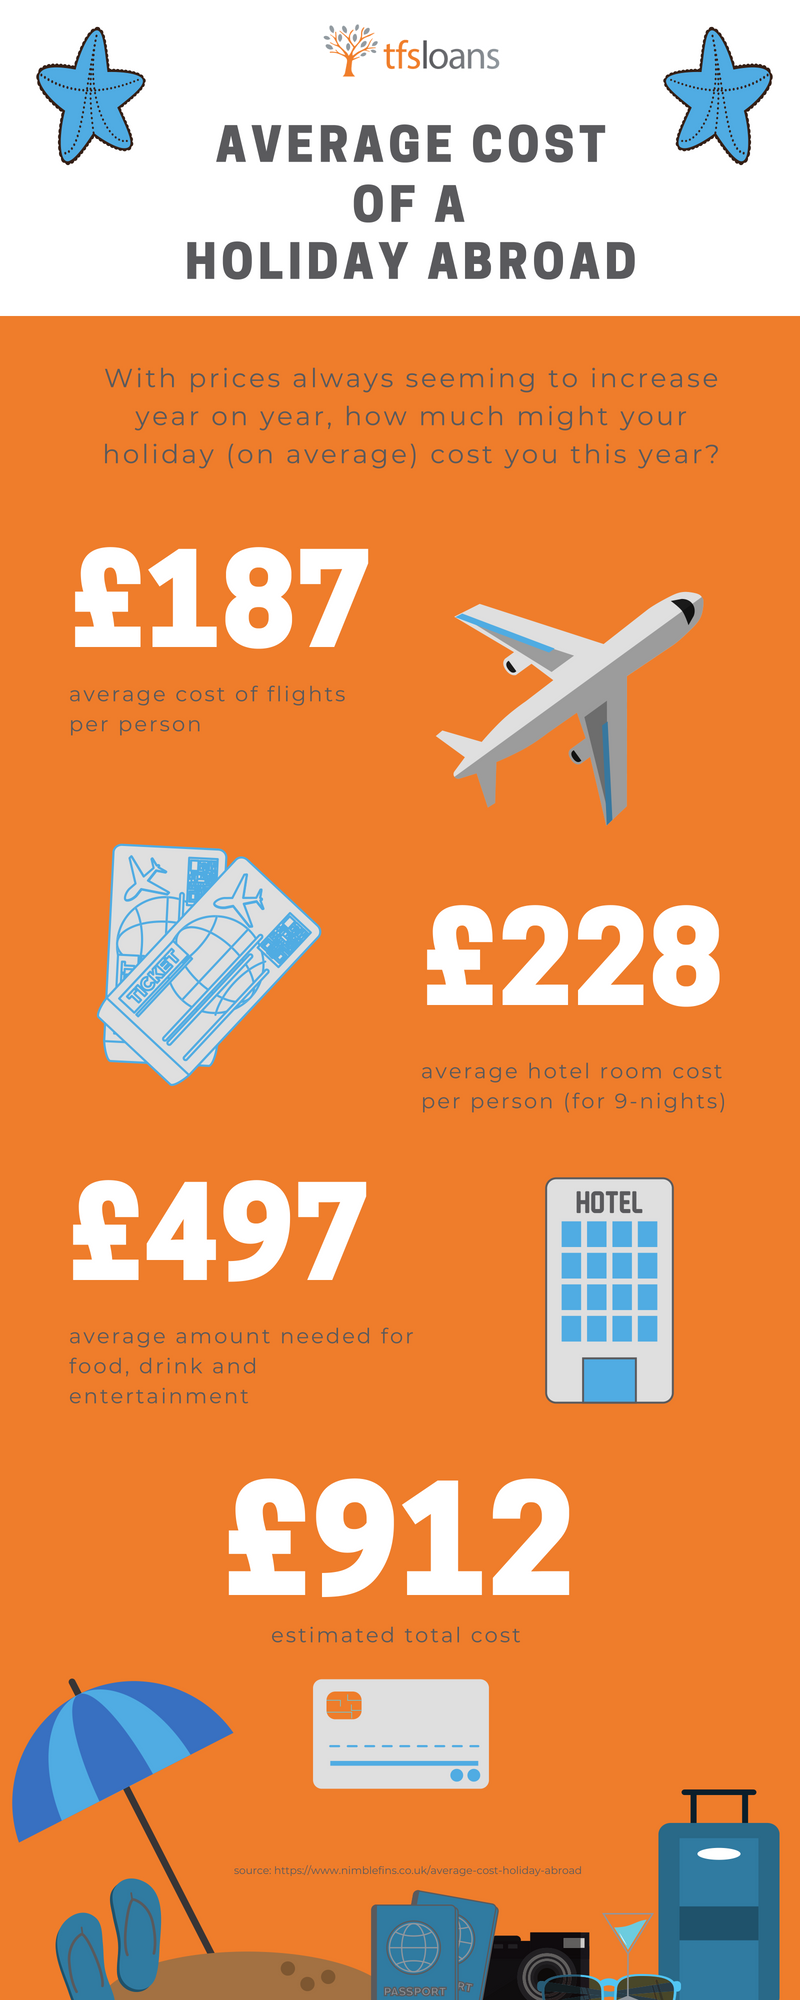 average cost of a holiday abroard